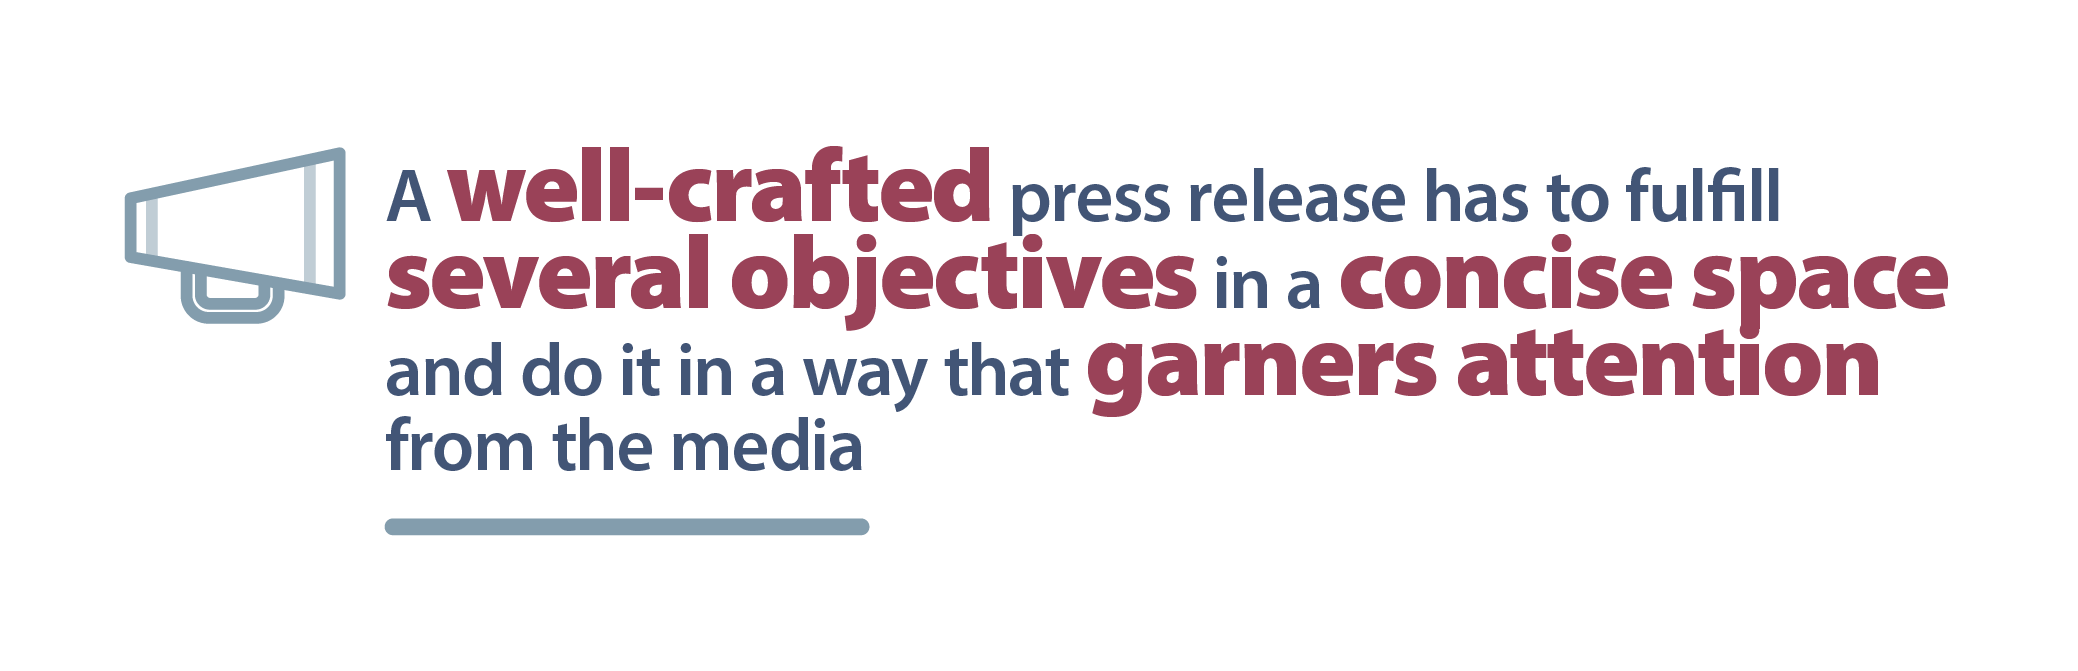 a well-crafted B2B press release